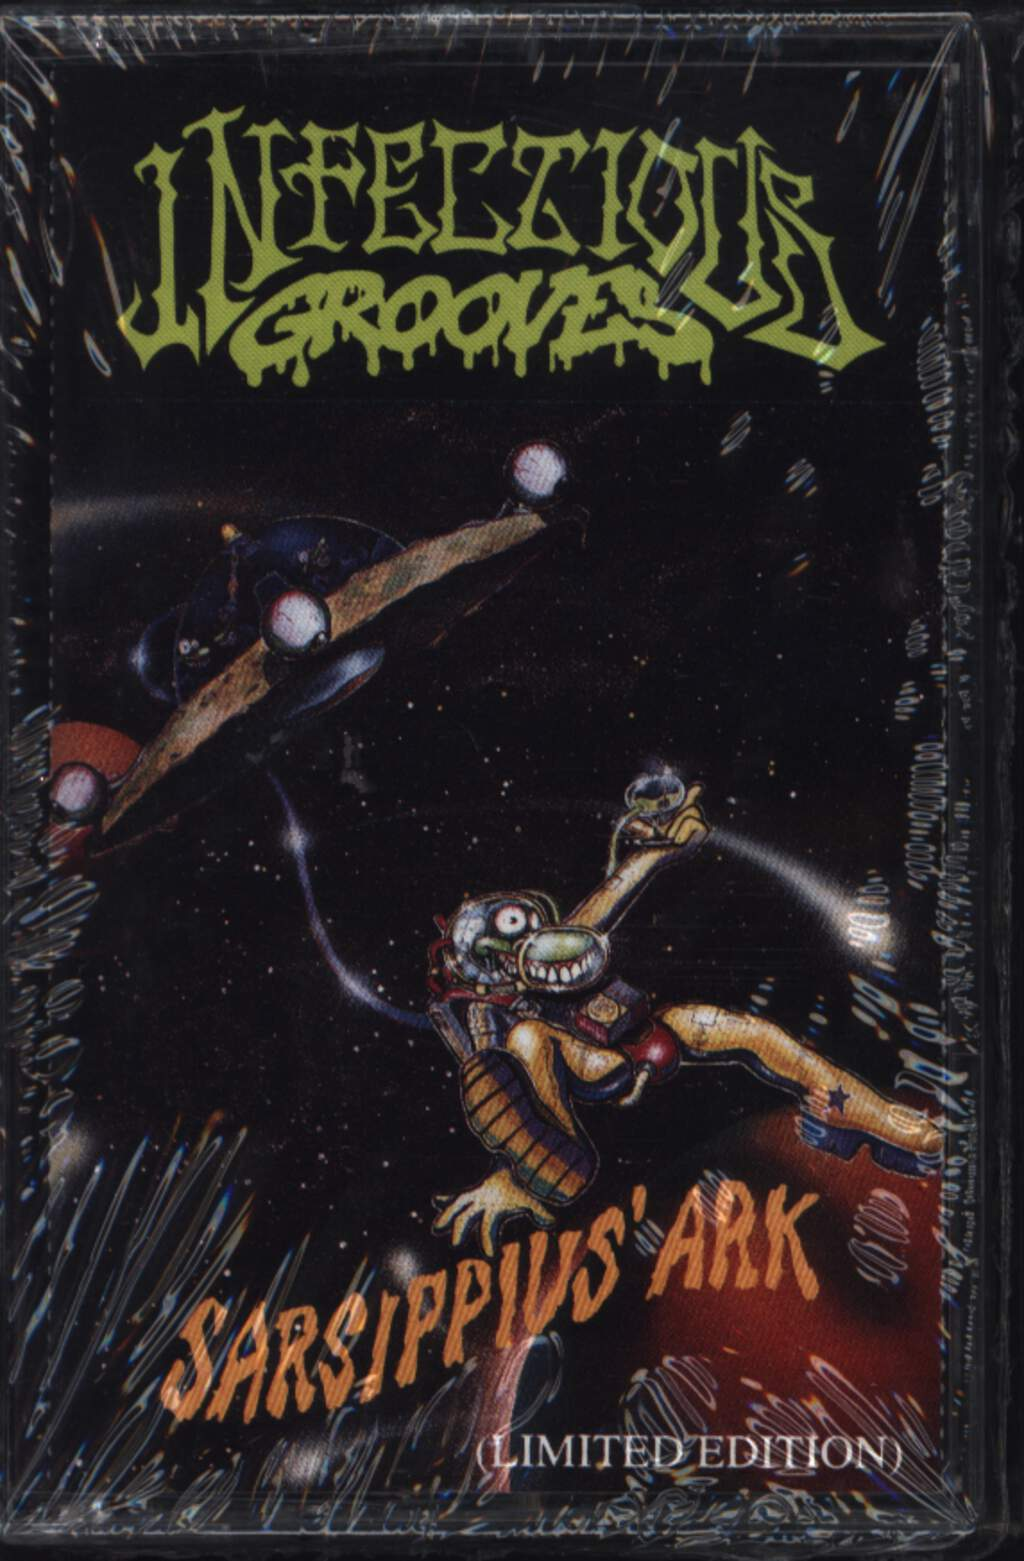 Infectious Grooves: Sarsippius' Ark (Limited Edition), Tape